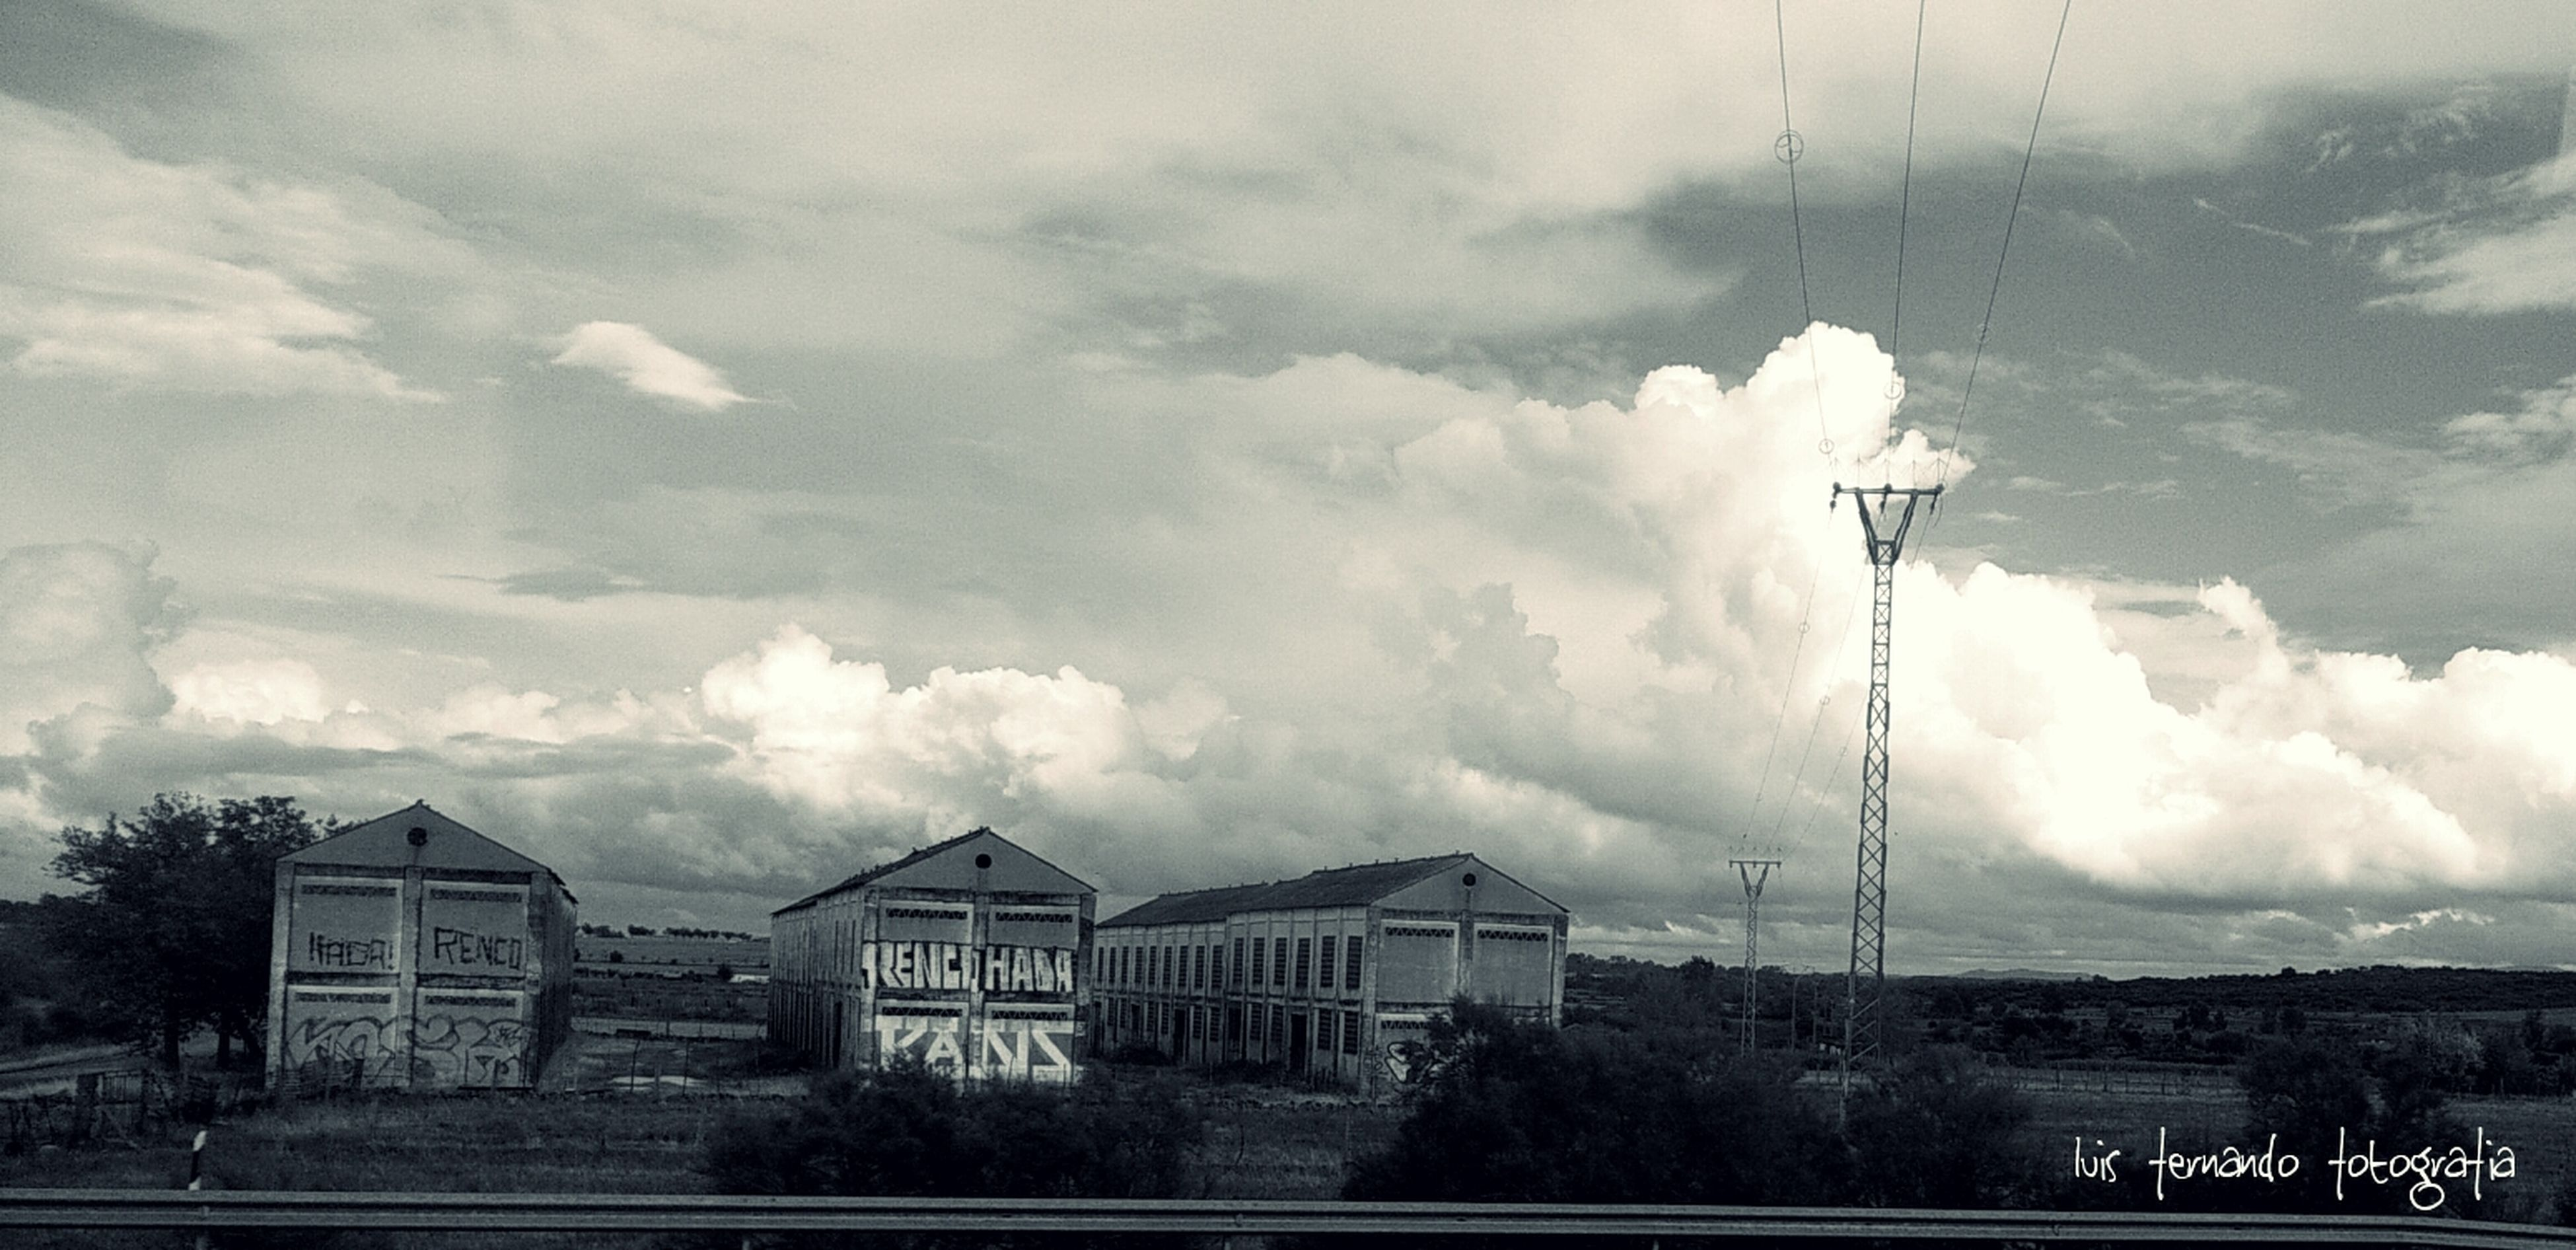 sky, cloud - sky, building exterior, cloudy, architecture, built structure, weather, cloud, overcast, field, nature, house, tree, day, landscape, road, city, outdoors, storm cloud, no people